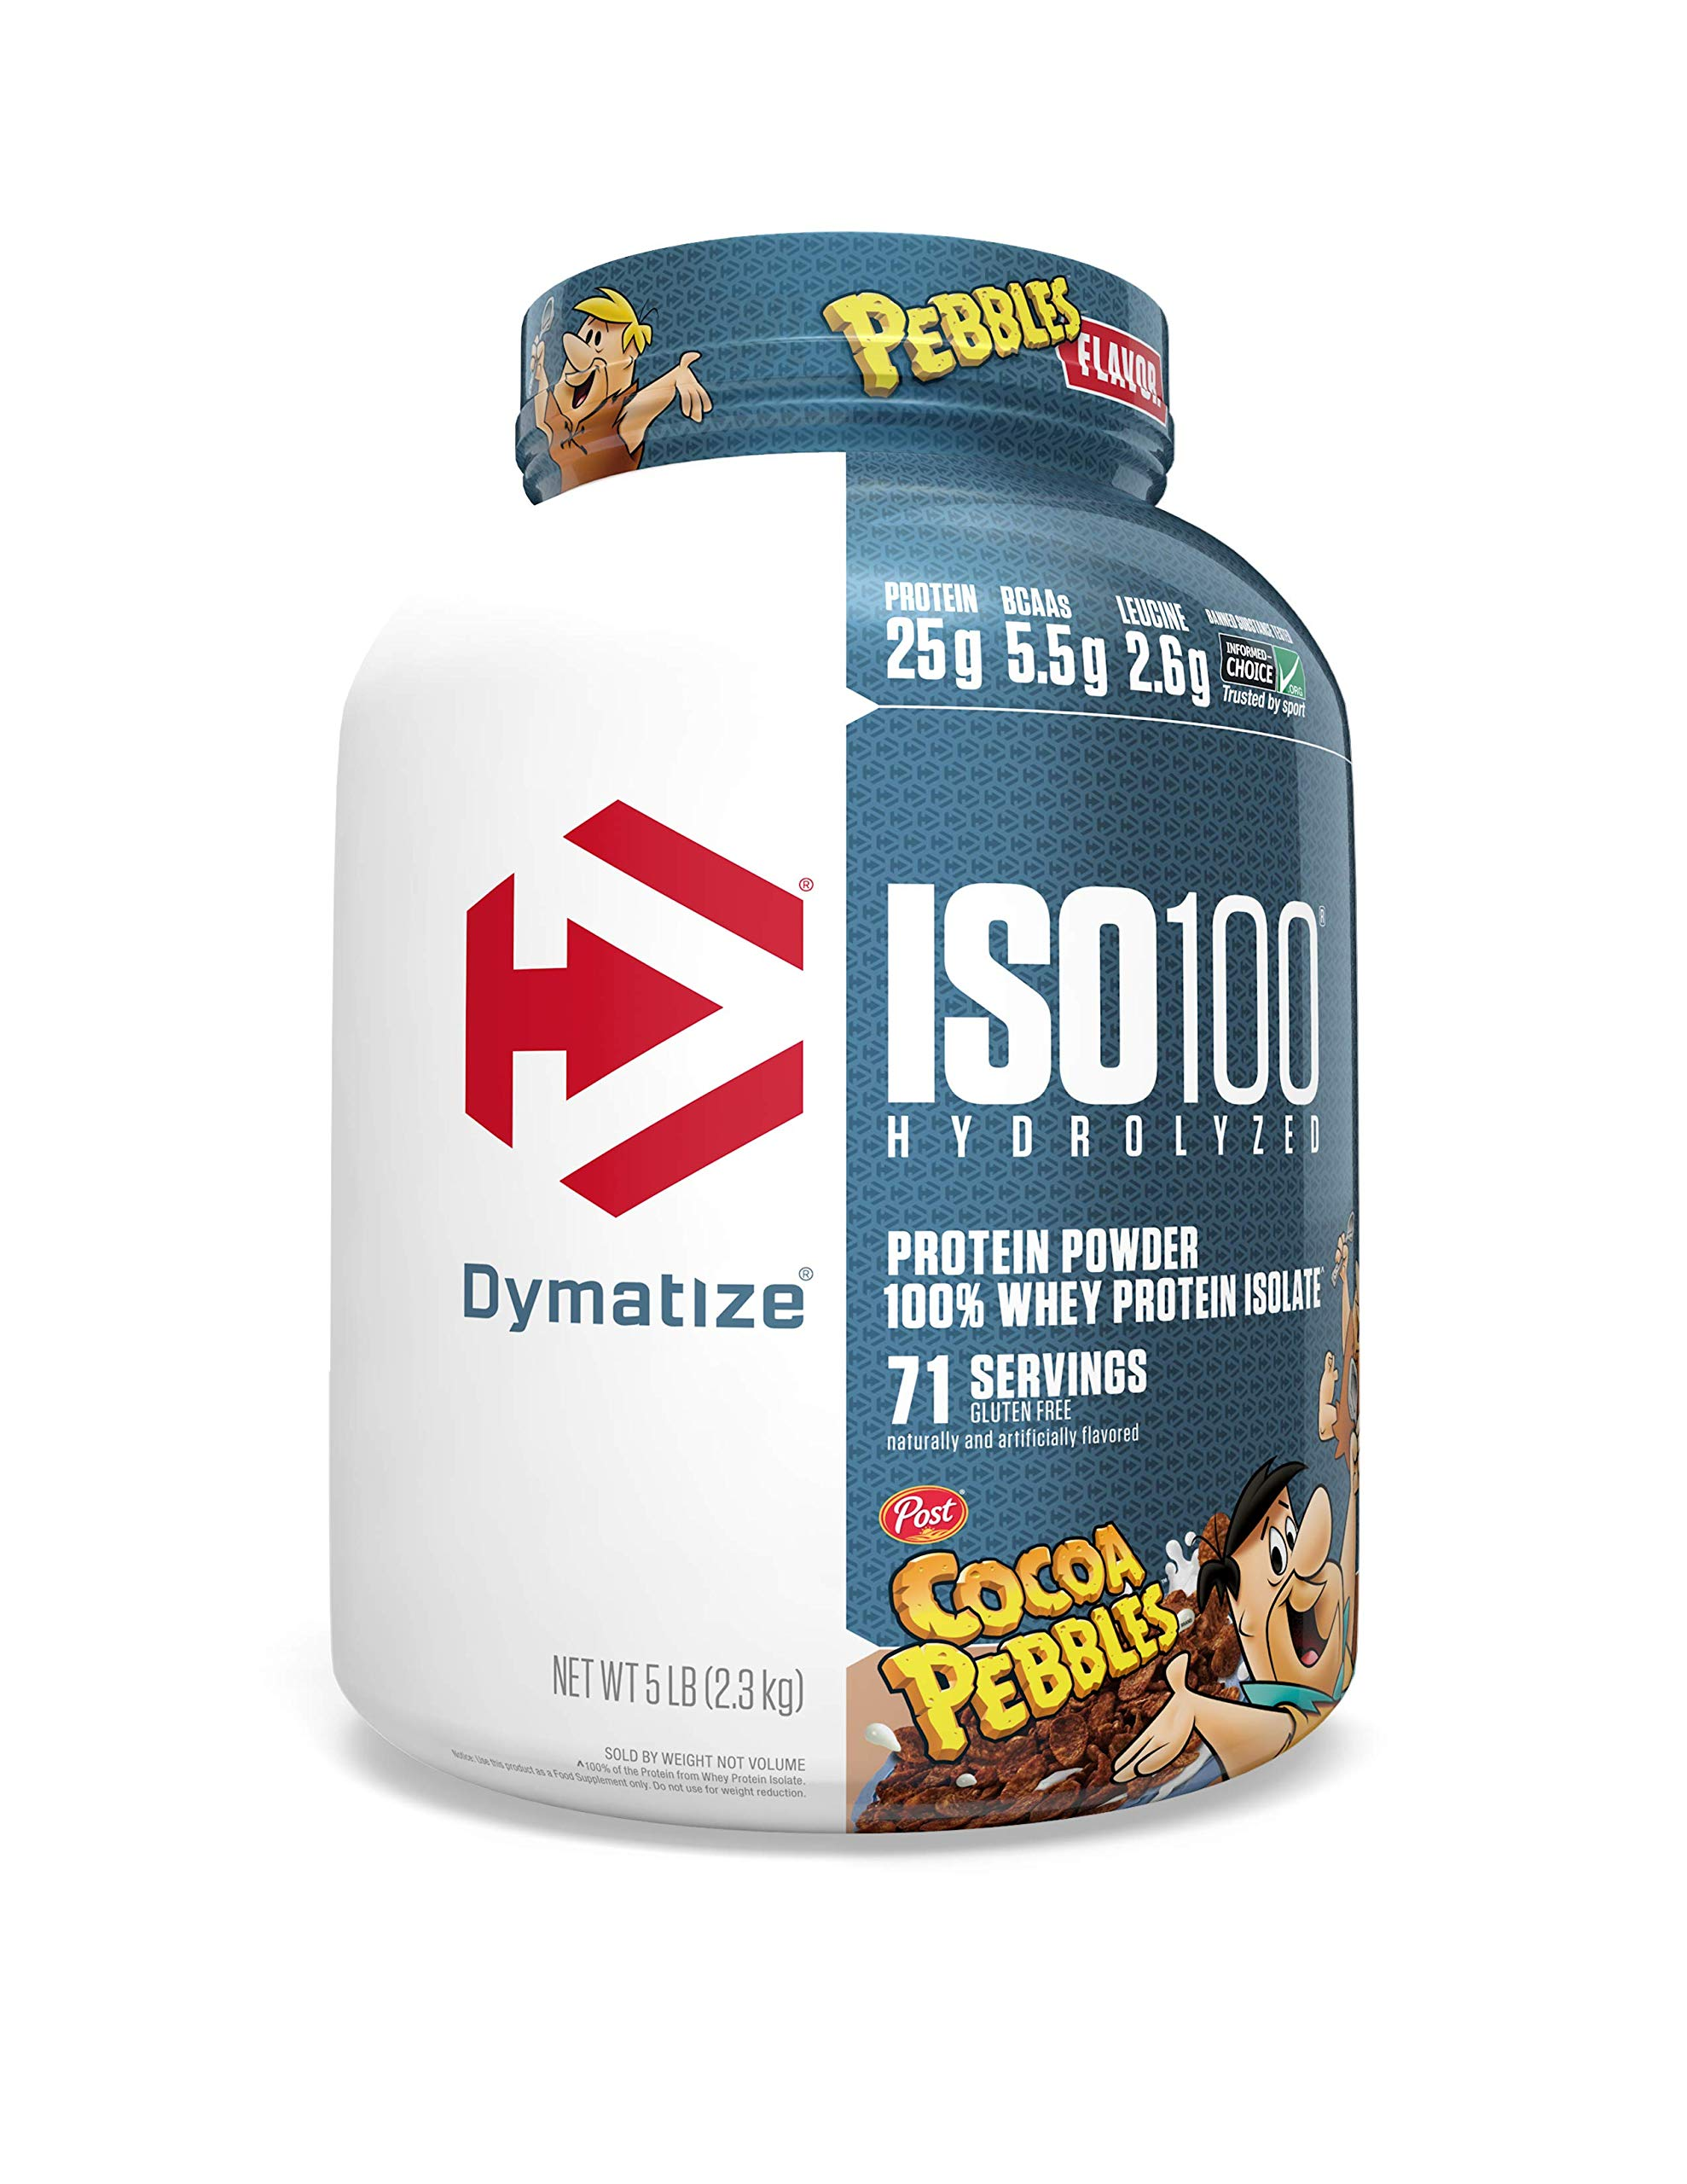 Dymatize ISO100 Hydrolyzed Protein Powder, 100% Whey Isolate Protein, 25g of Protein, 5.5g BCAAs, Gluten Free, Fast Absorbing, Easy Digesting, Cocoa Pebbles, 5 Pound